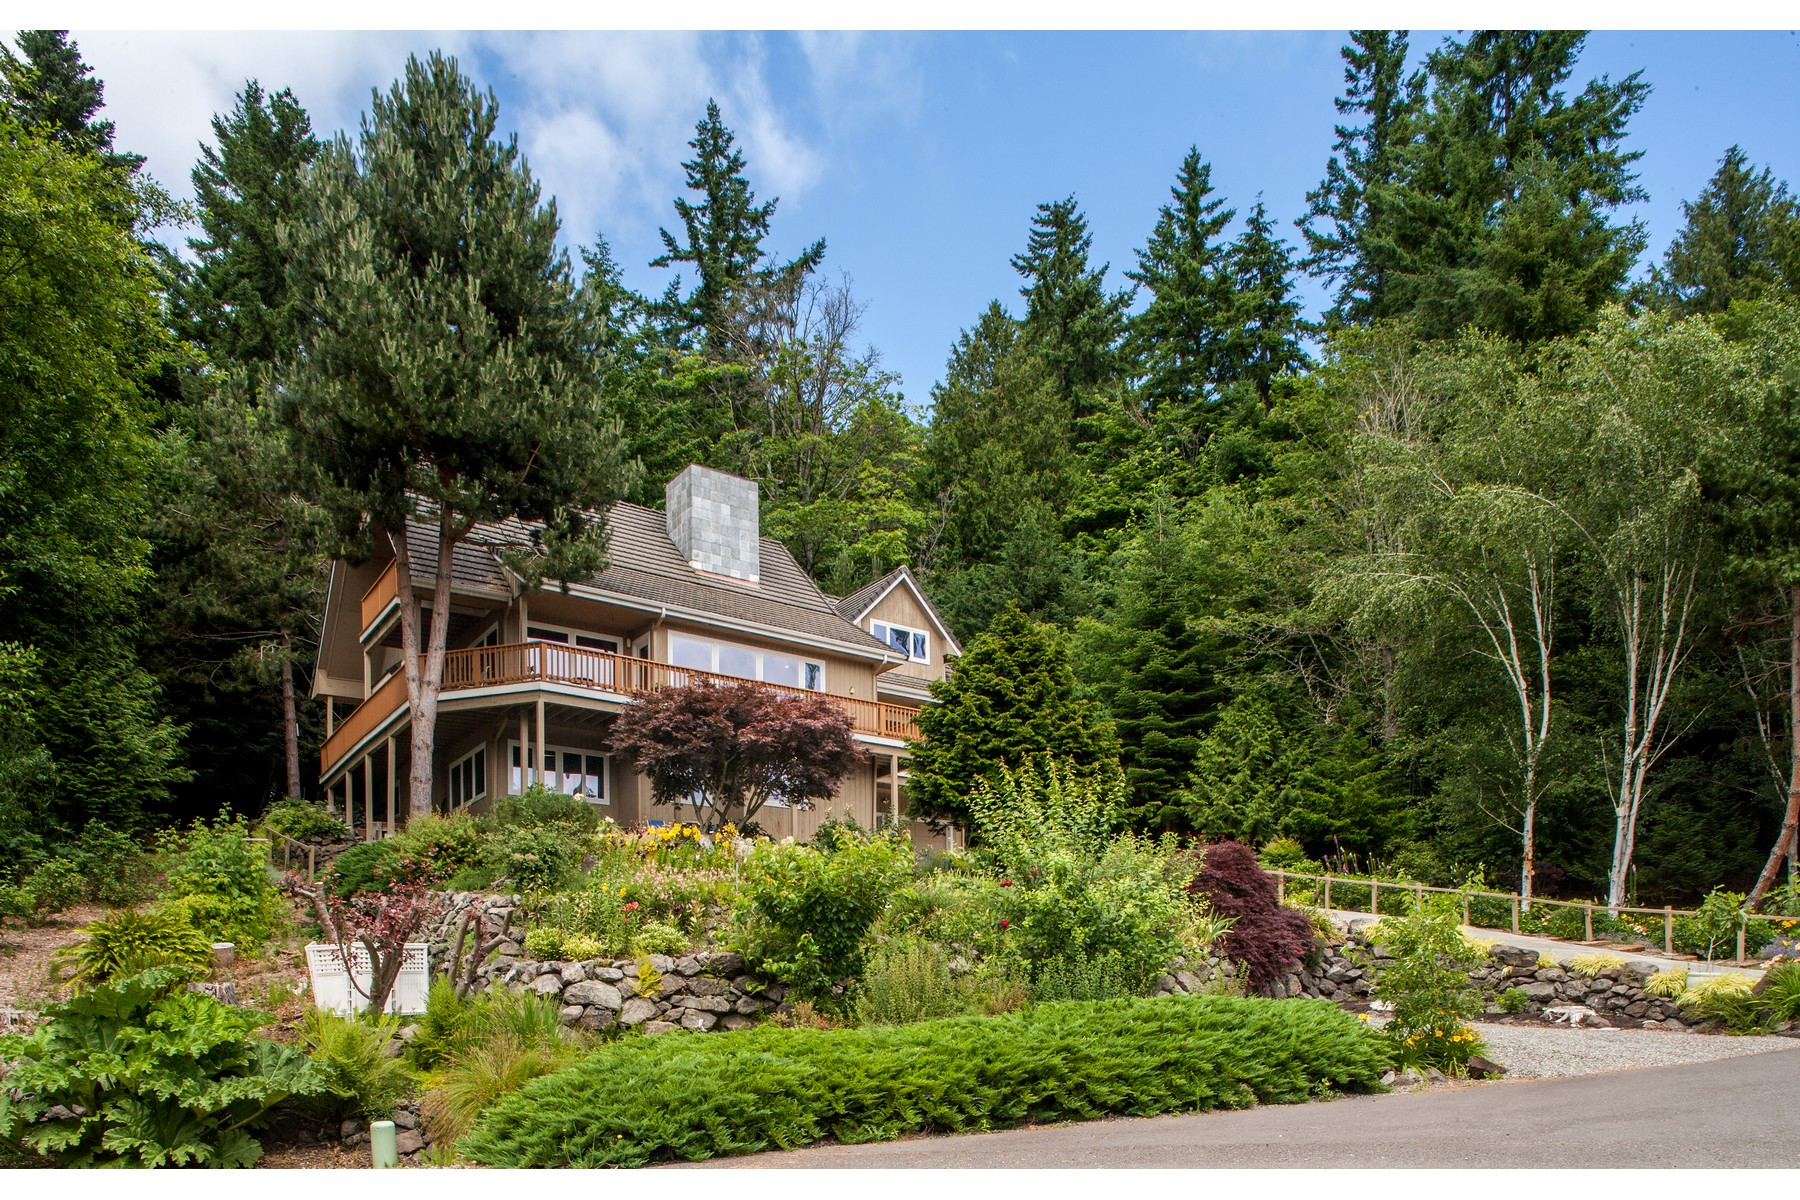 Single Family Home for Sale at Exceptional View Home 7688 NE Chief Wahalchu Rd Indianola, Washington 98342 United States